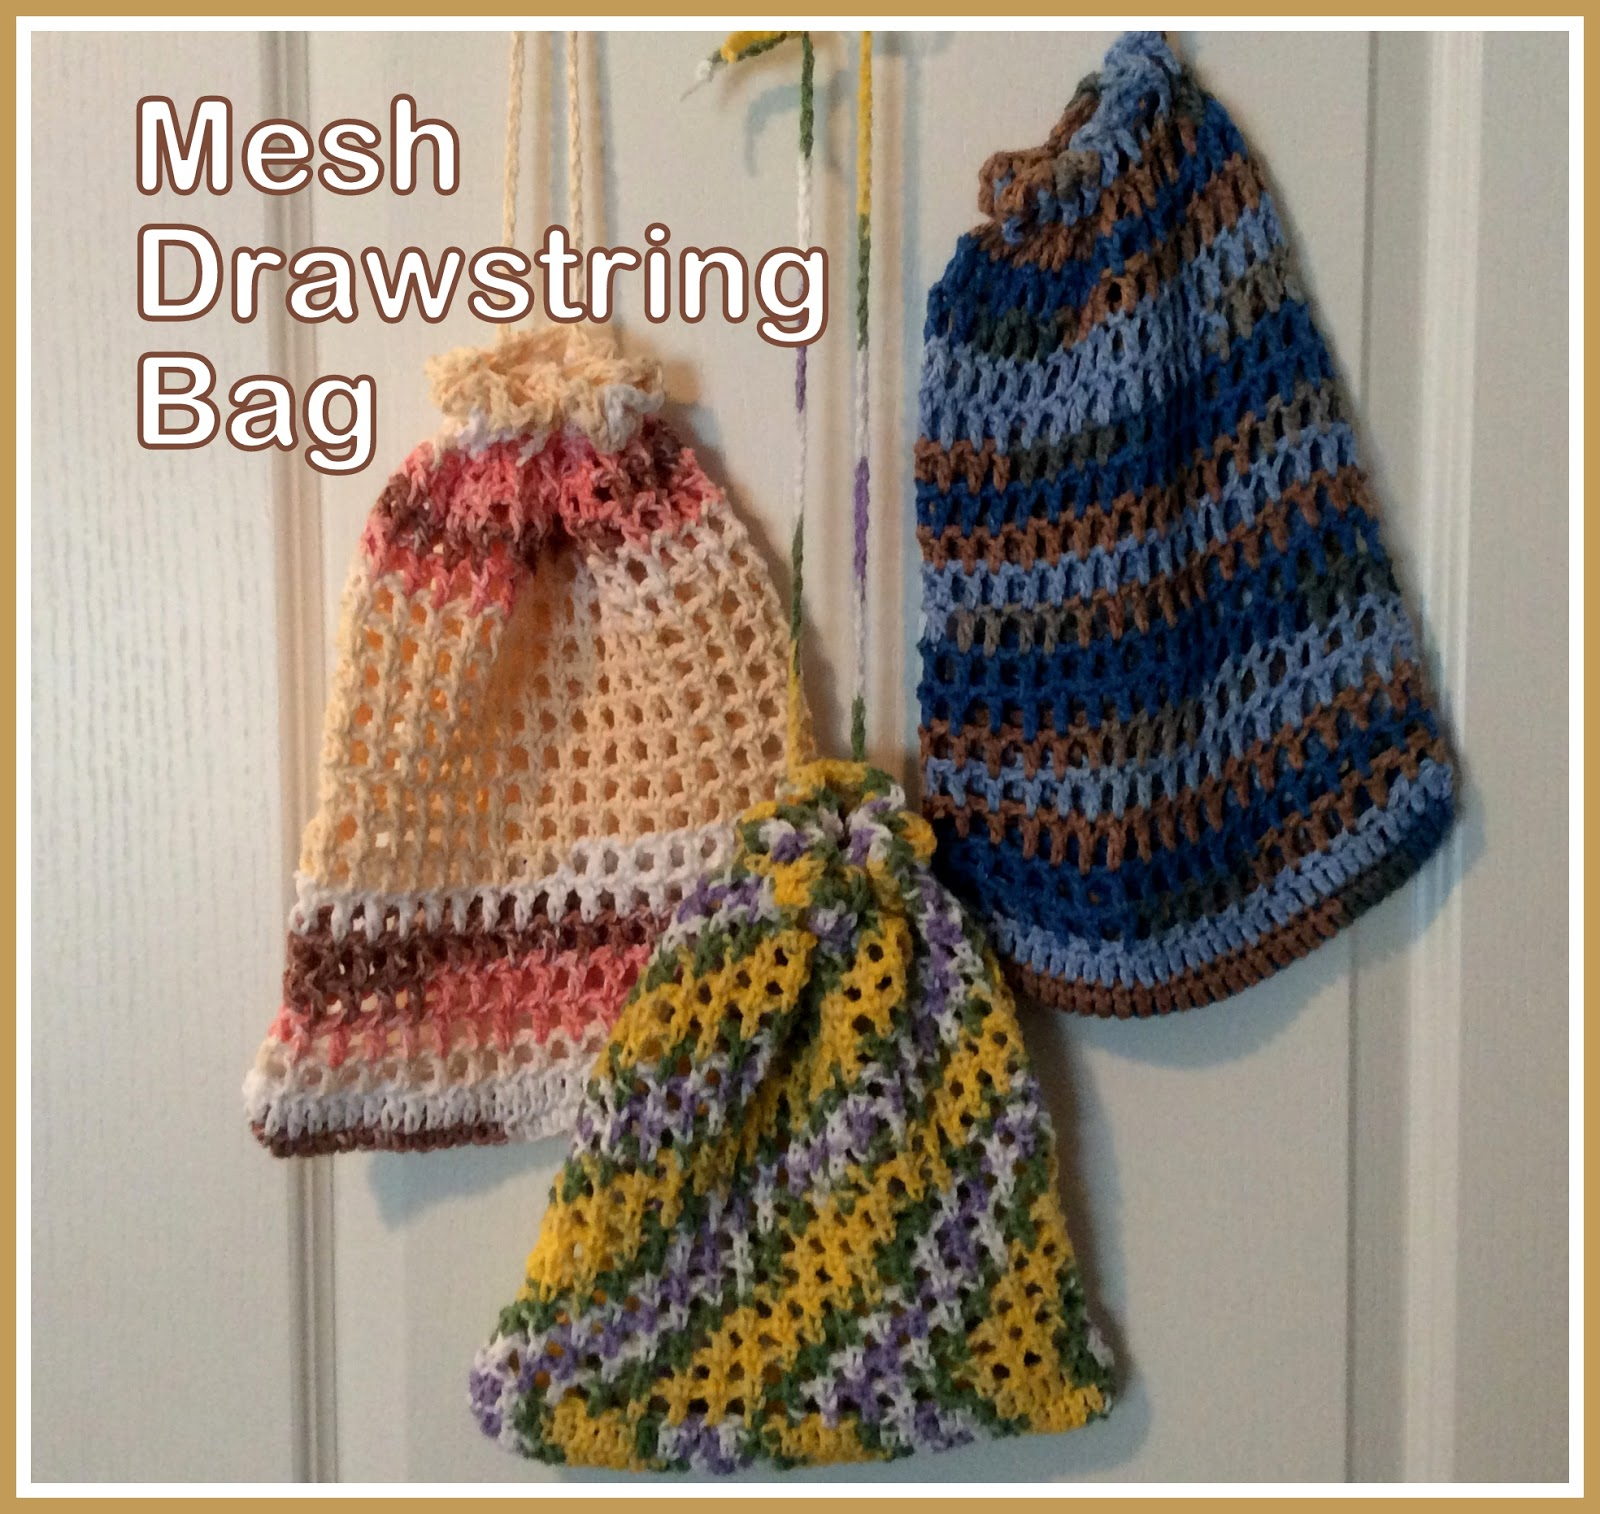 Posh Pooch Designs Dog Clothes: Small Mesh Drawstring Bag Crochet ...